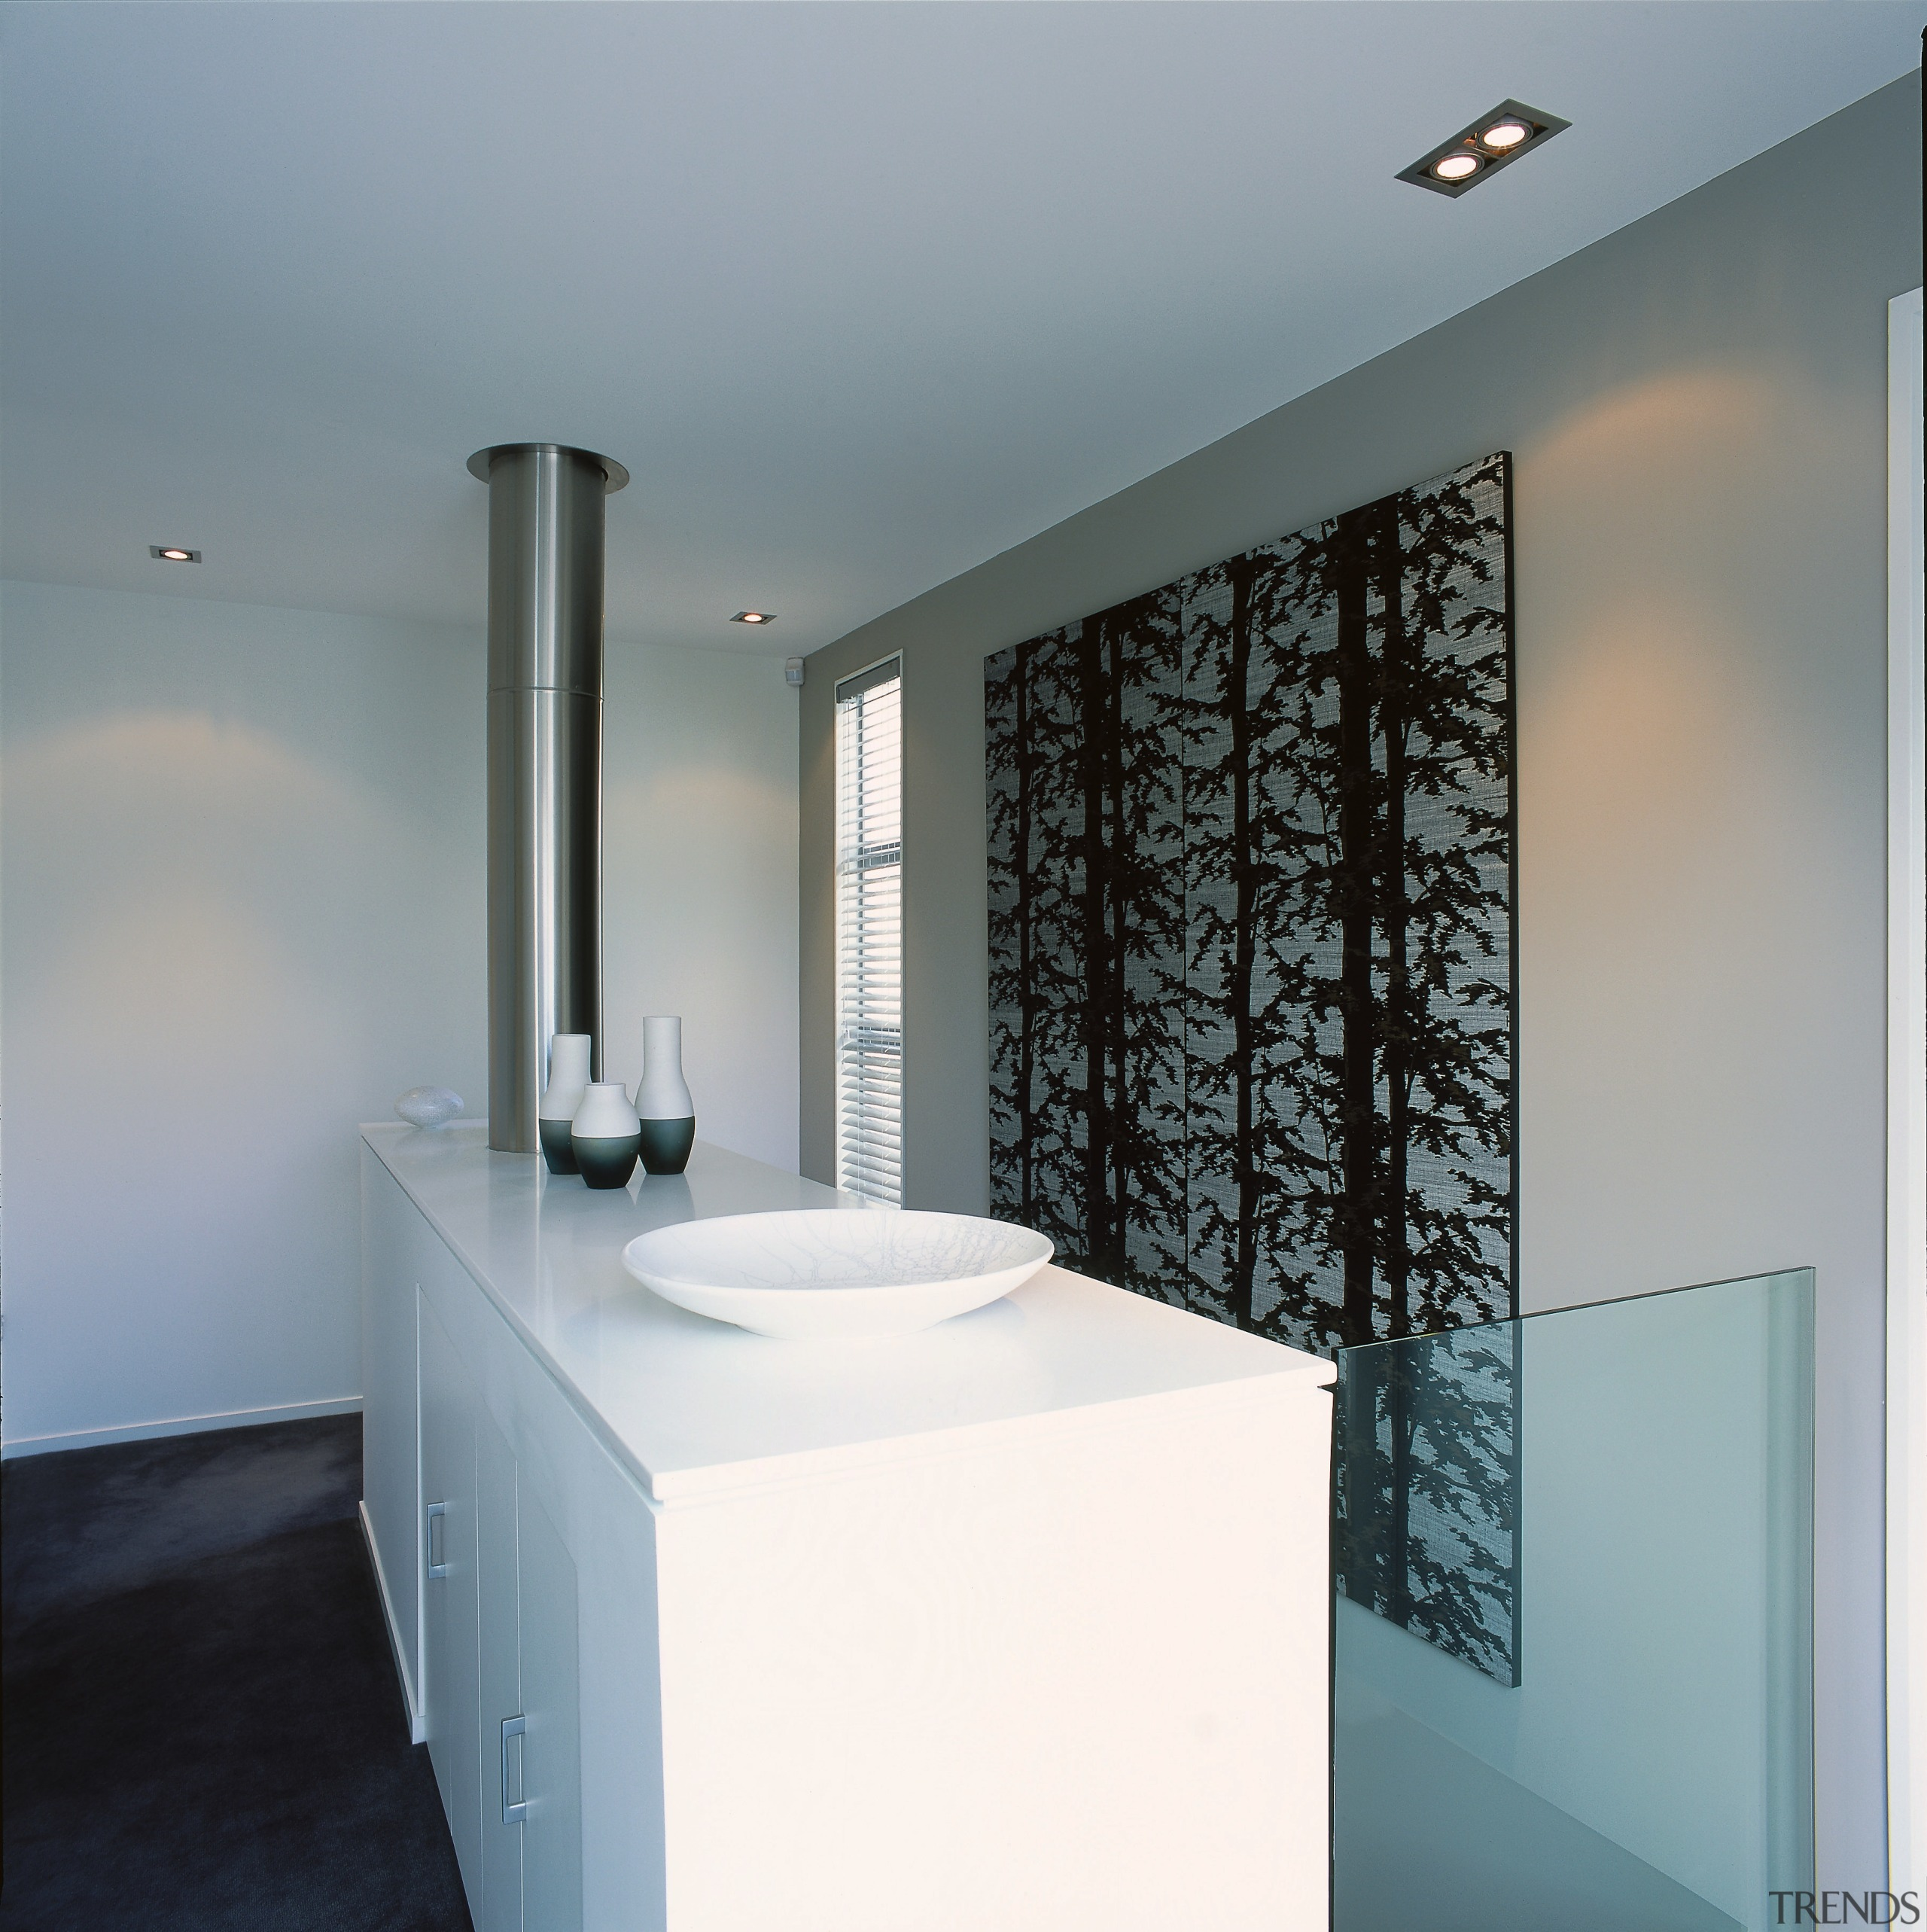 View of this living area - View of architecture, bathroom, ceiling, interior design, product design, tap, gray